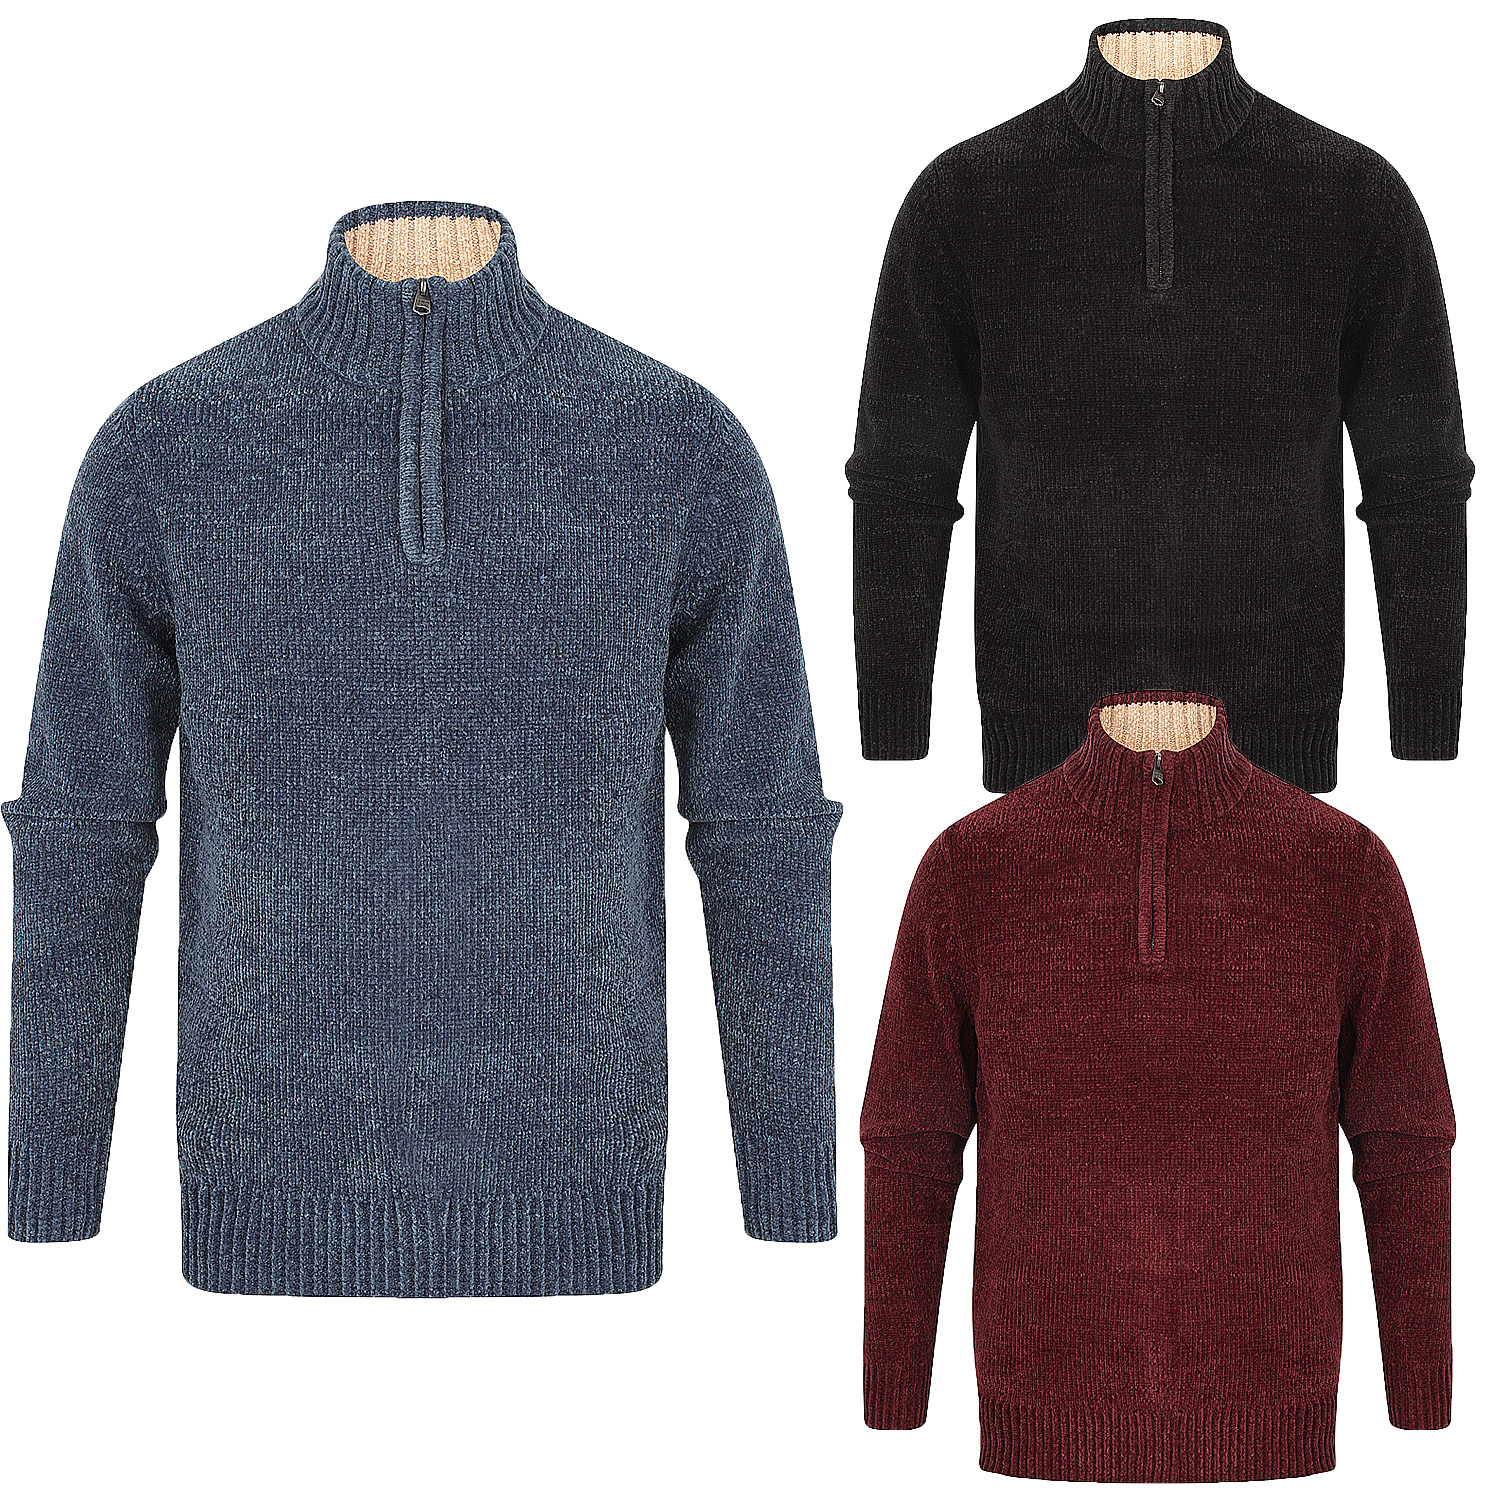 Details about Kensington Mens Bolsover 14 Zip Neck Jumper Chunky Knitted Chenille Sweater